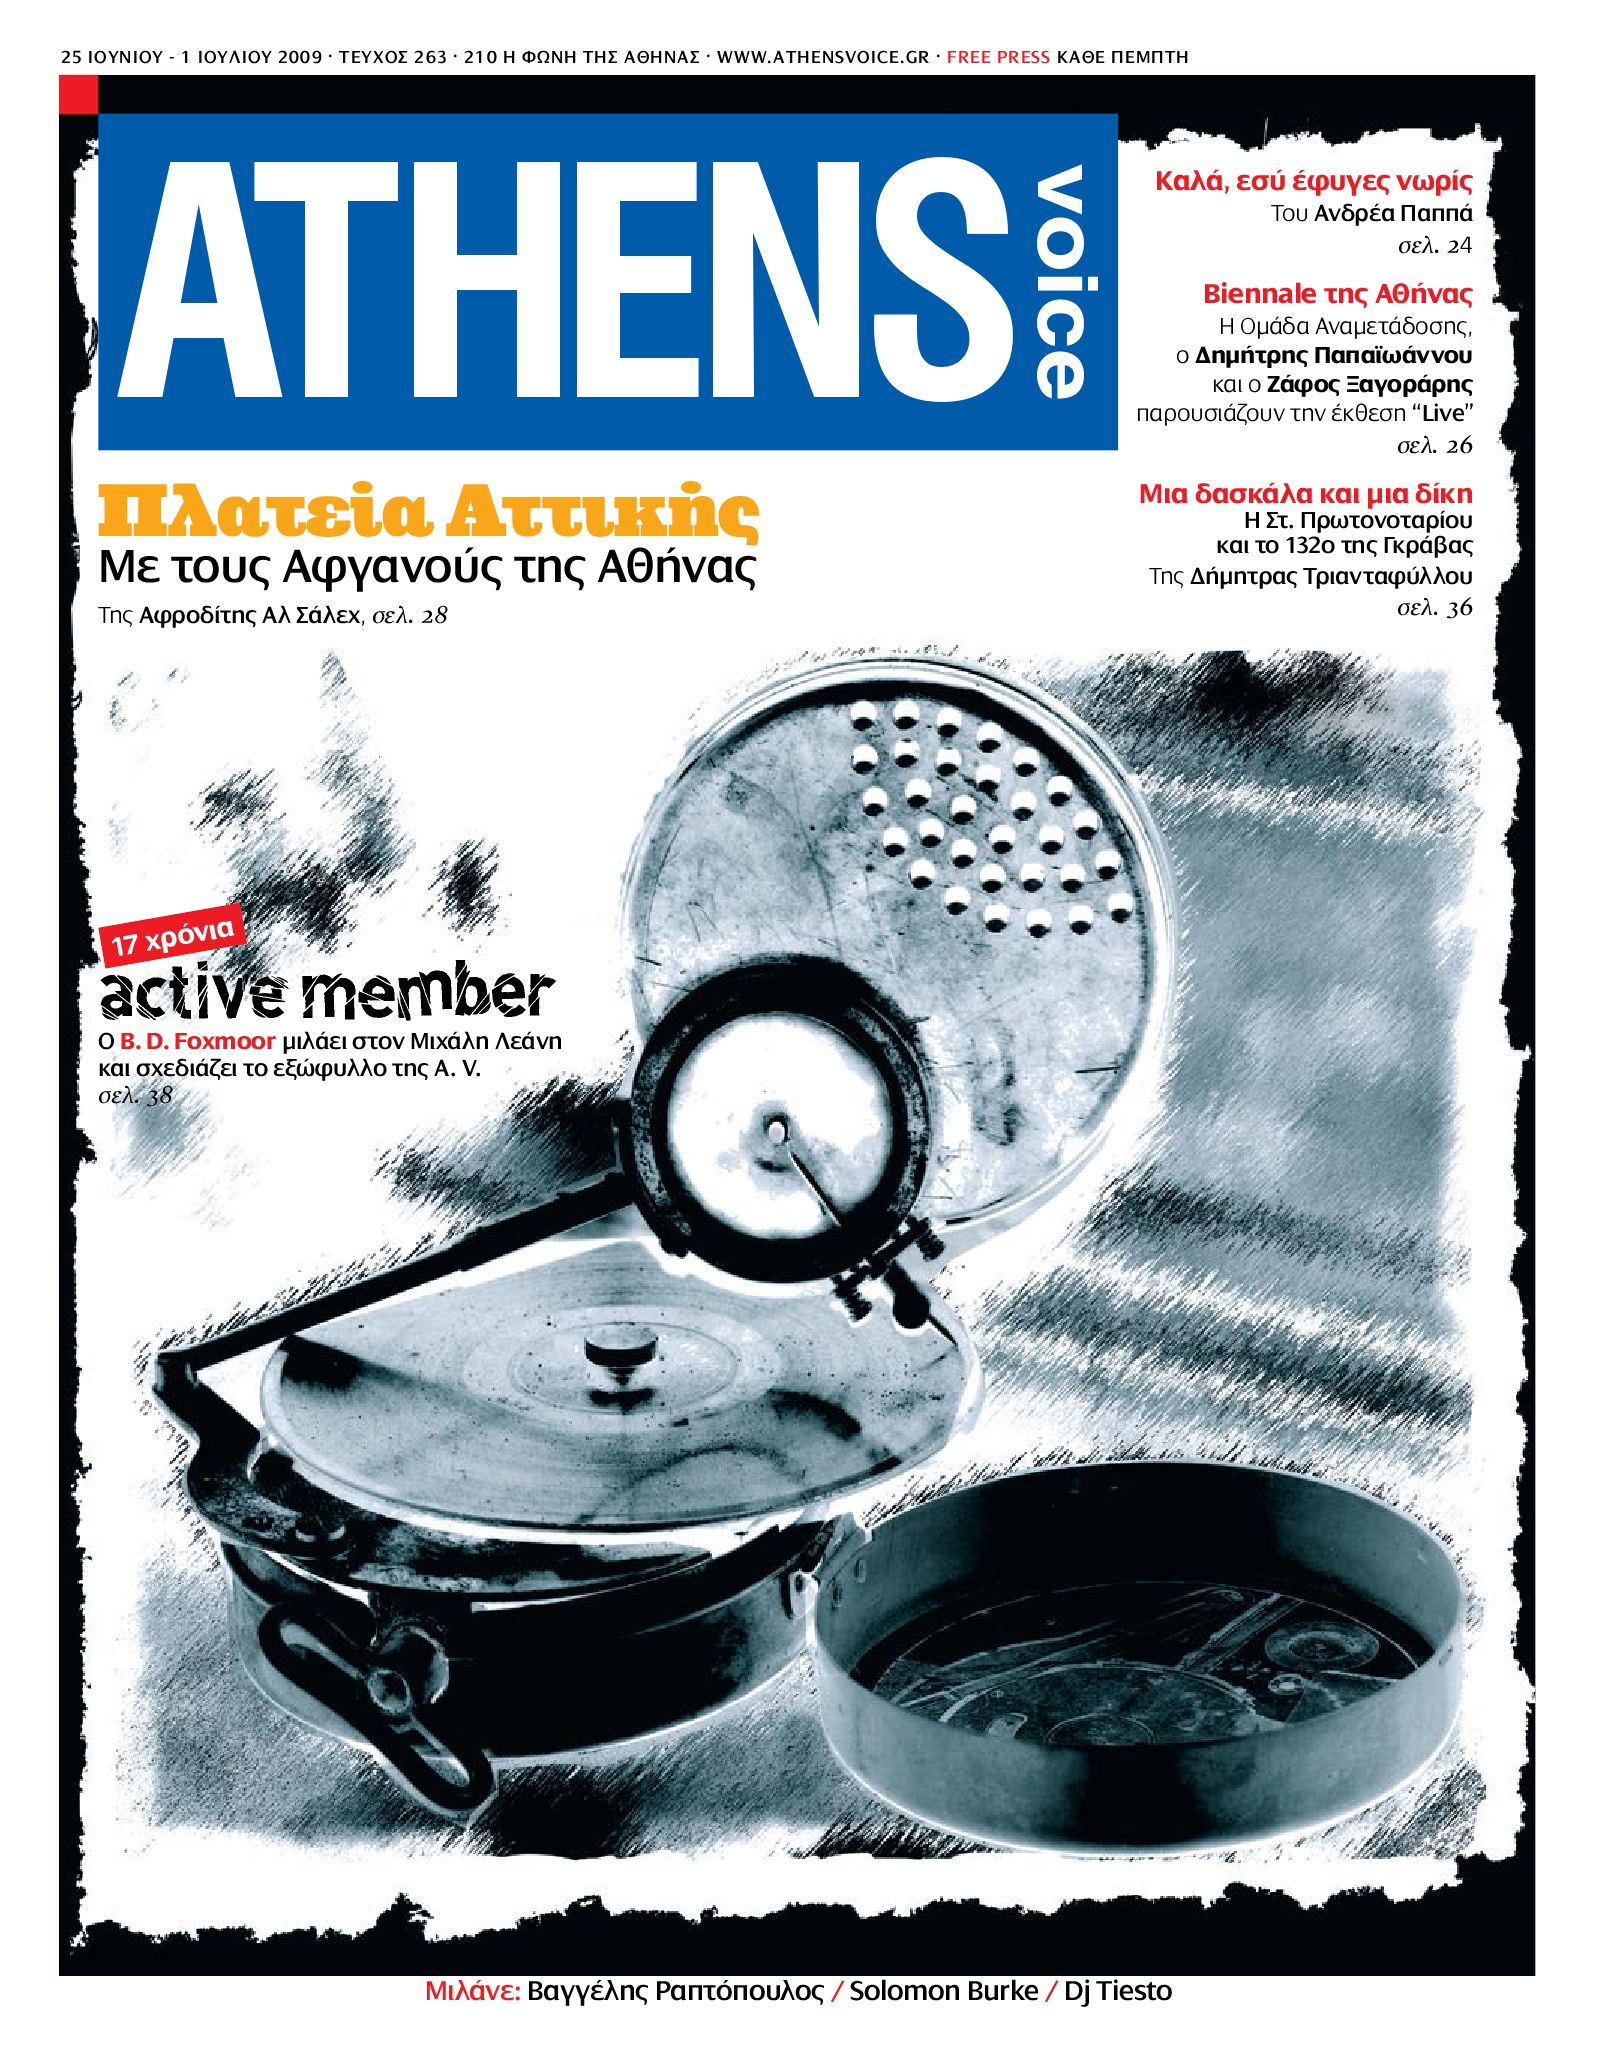 8a8a12a02d Athens Voice 263 by Athens Voice - issuu